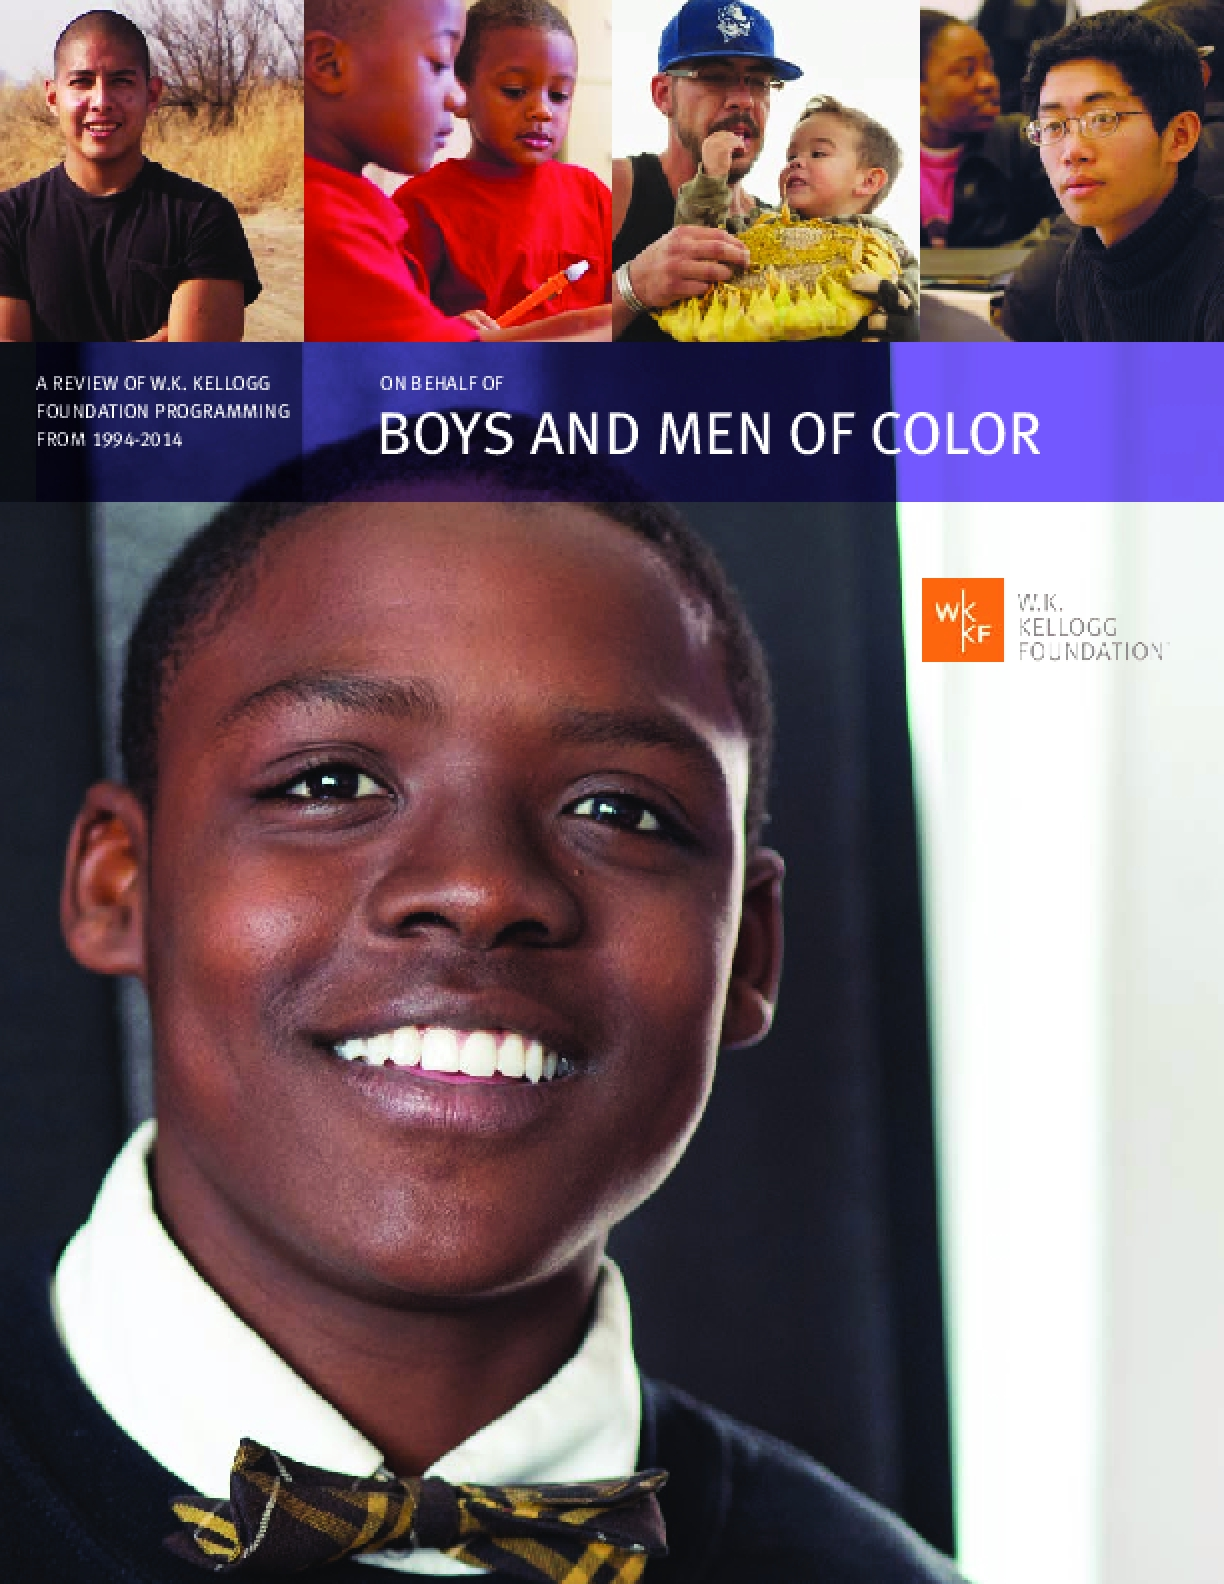 On Behalf of Boys and Men of Color